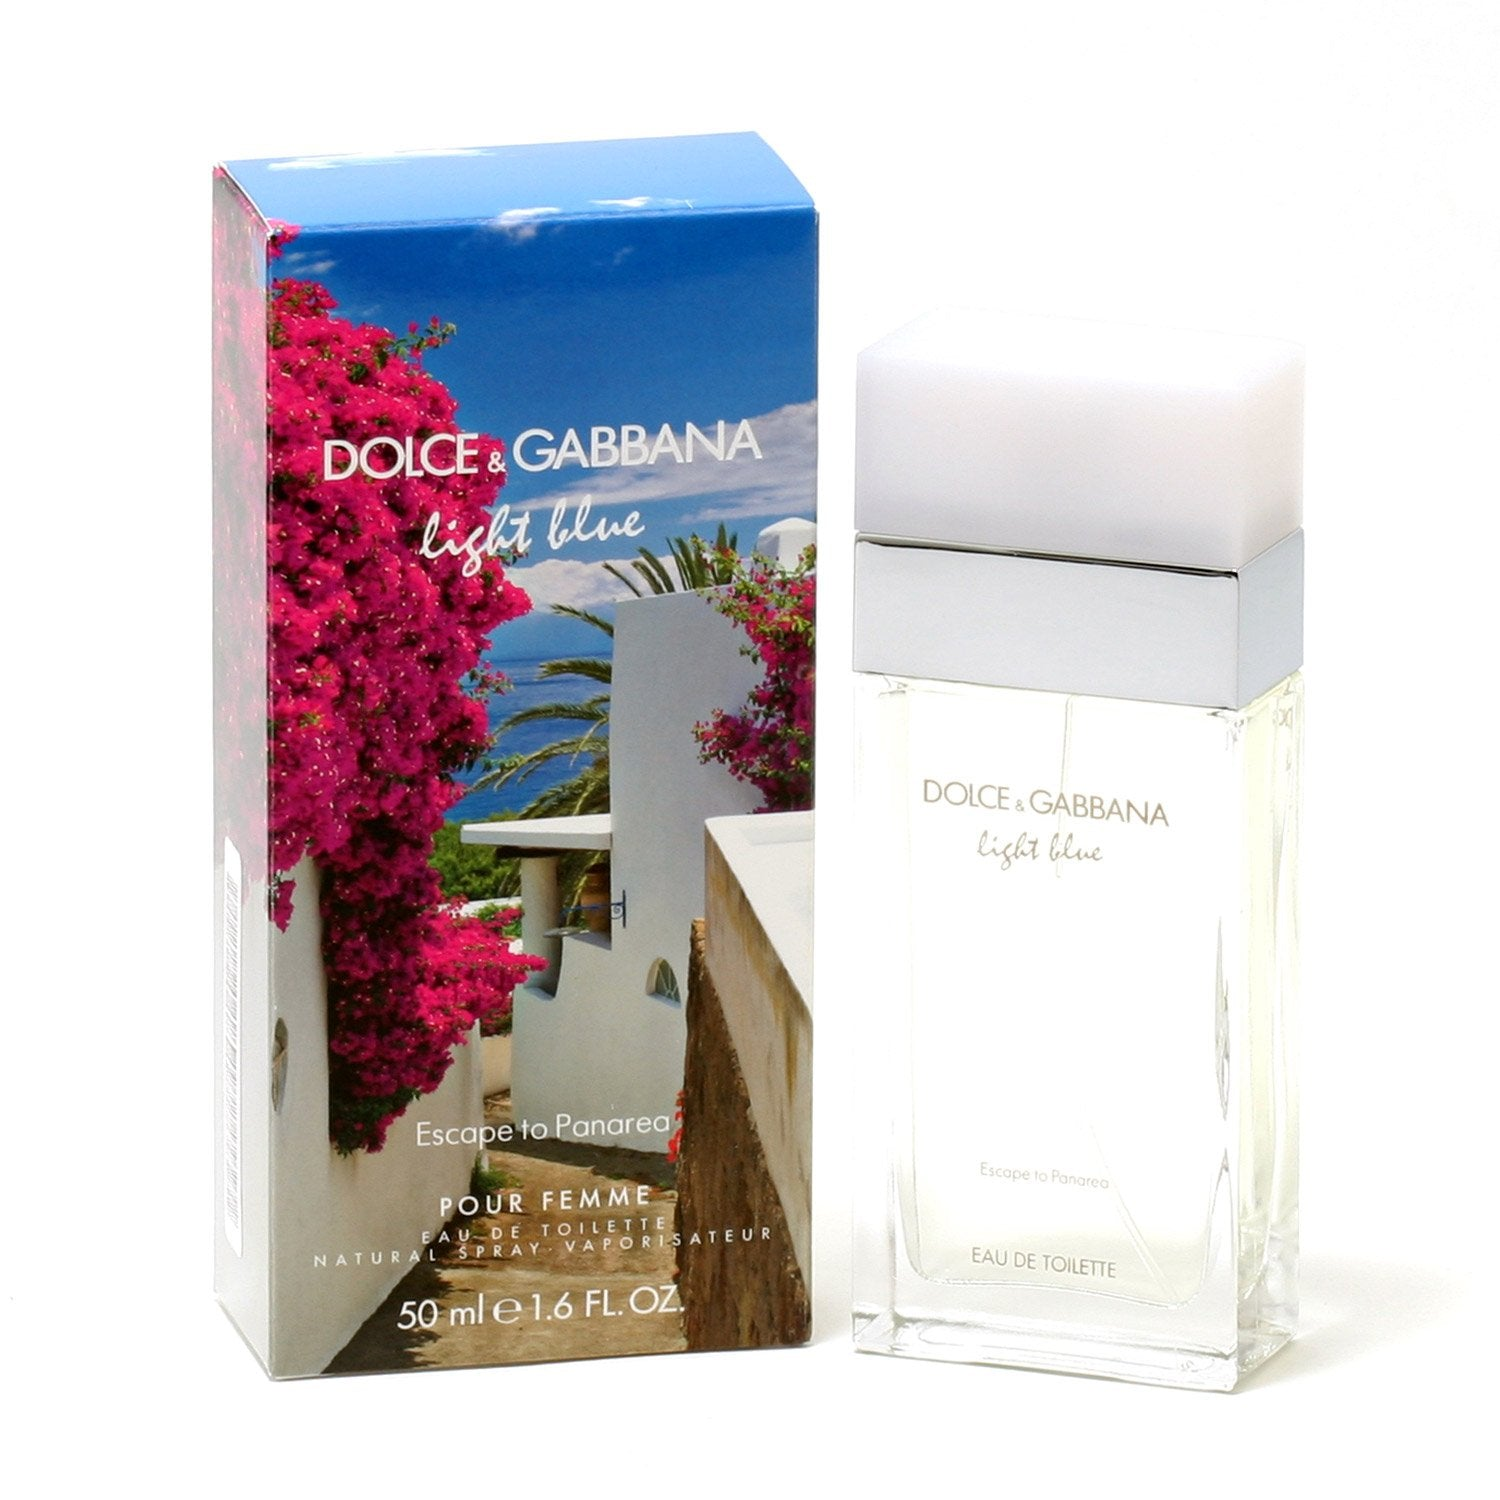 Perfume - DOLCE & GABBANA LIGHT BLUE ESCAPE TO PANAREA FOR WOMEN - EAU DE TOILETTE